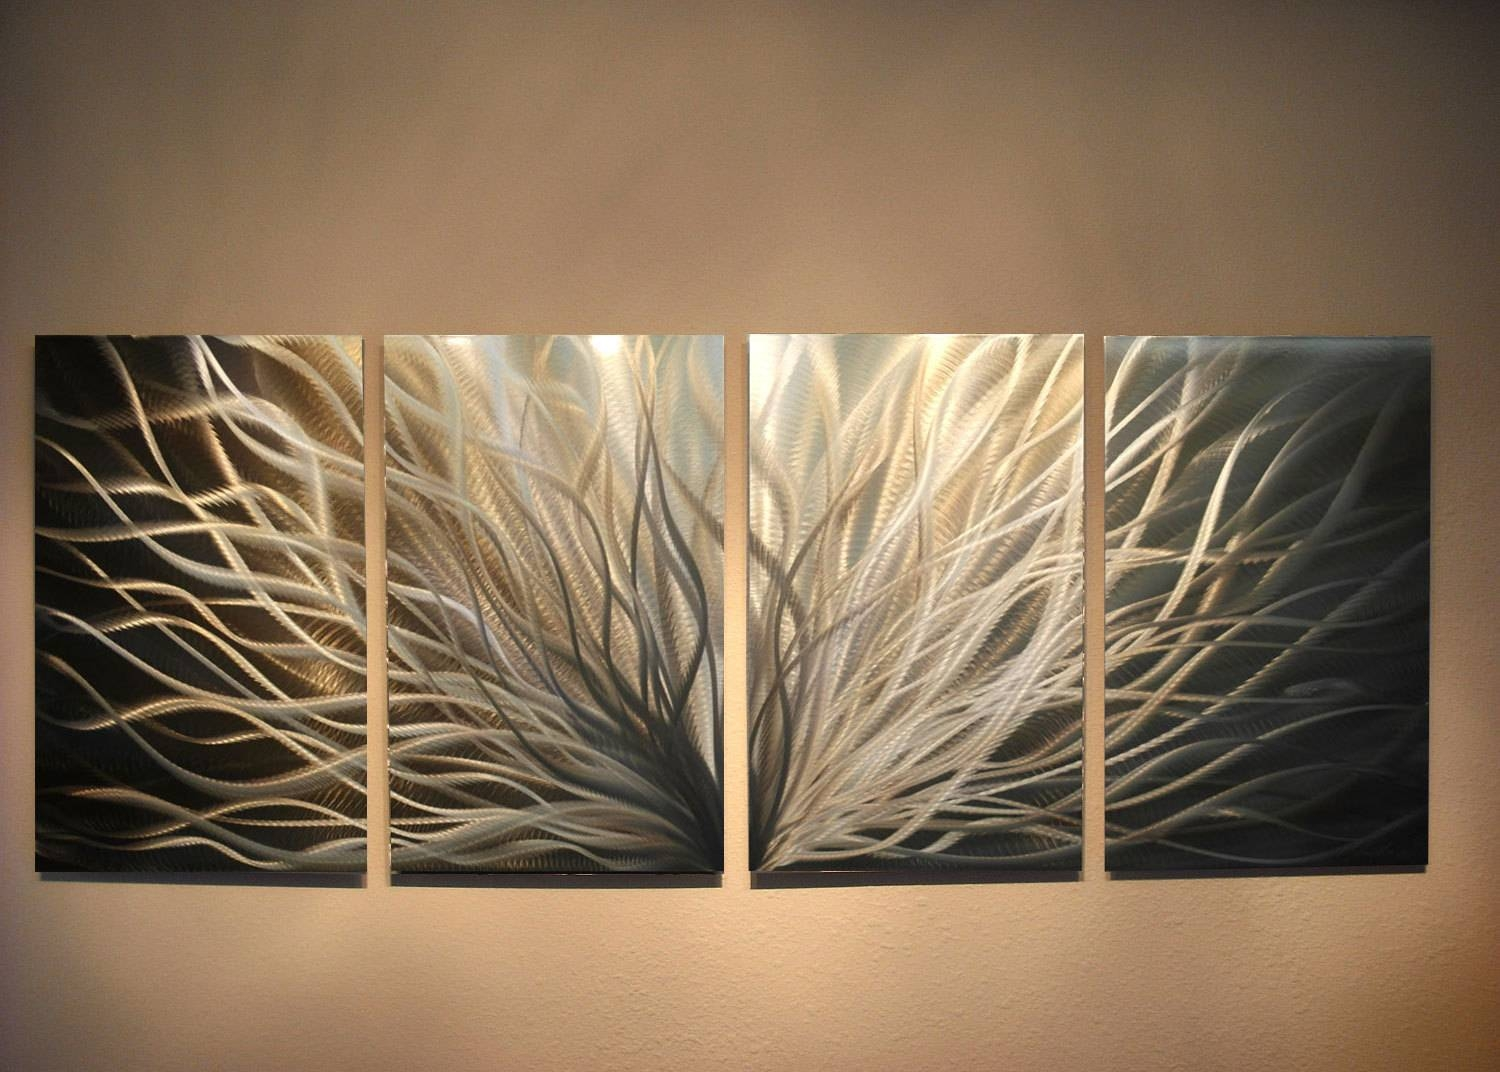 Metal Art Wall Art Decor Aluminum Abstract Contemporary Modern Inside 2017 Contemporary Metal Wall Art Decor (View 4 of 20)